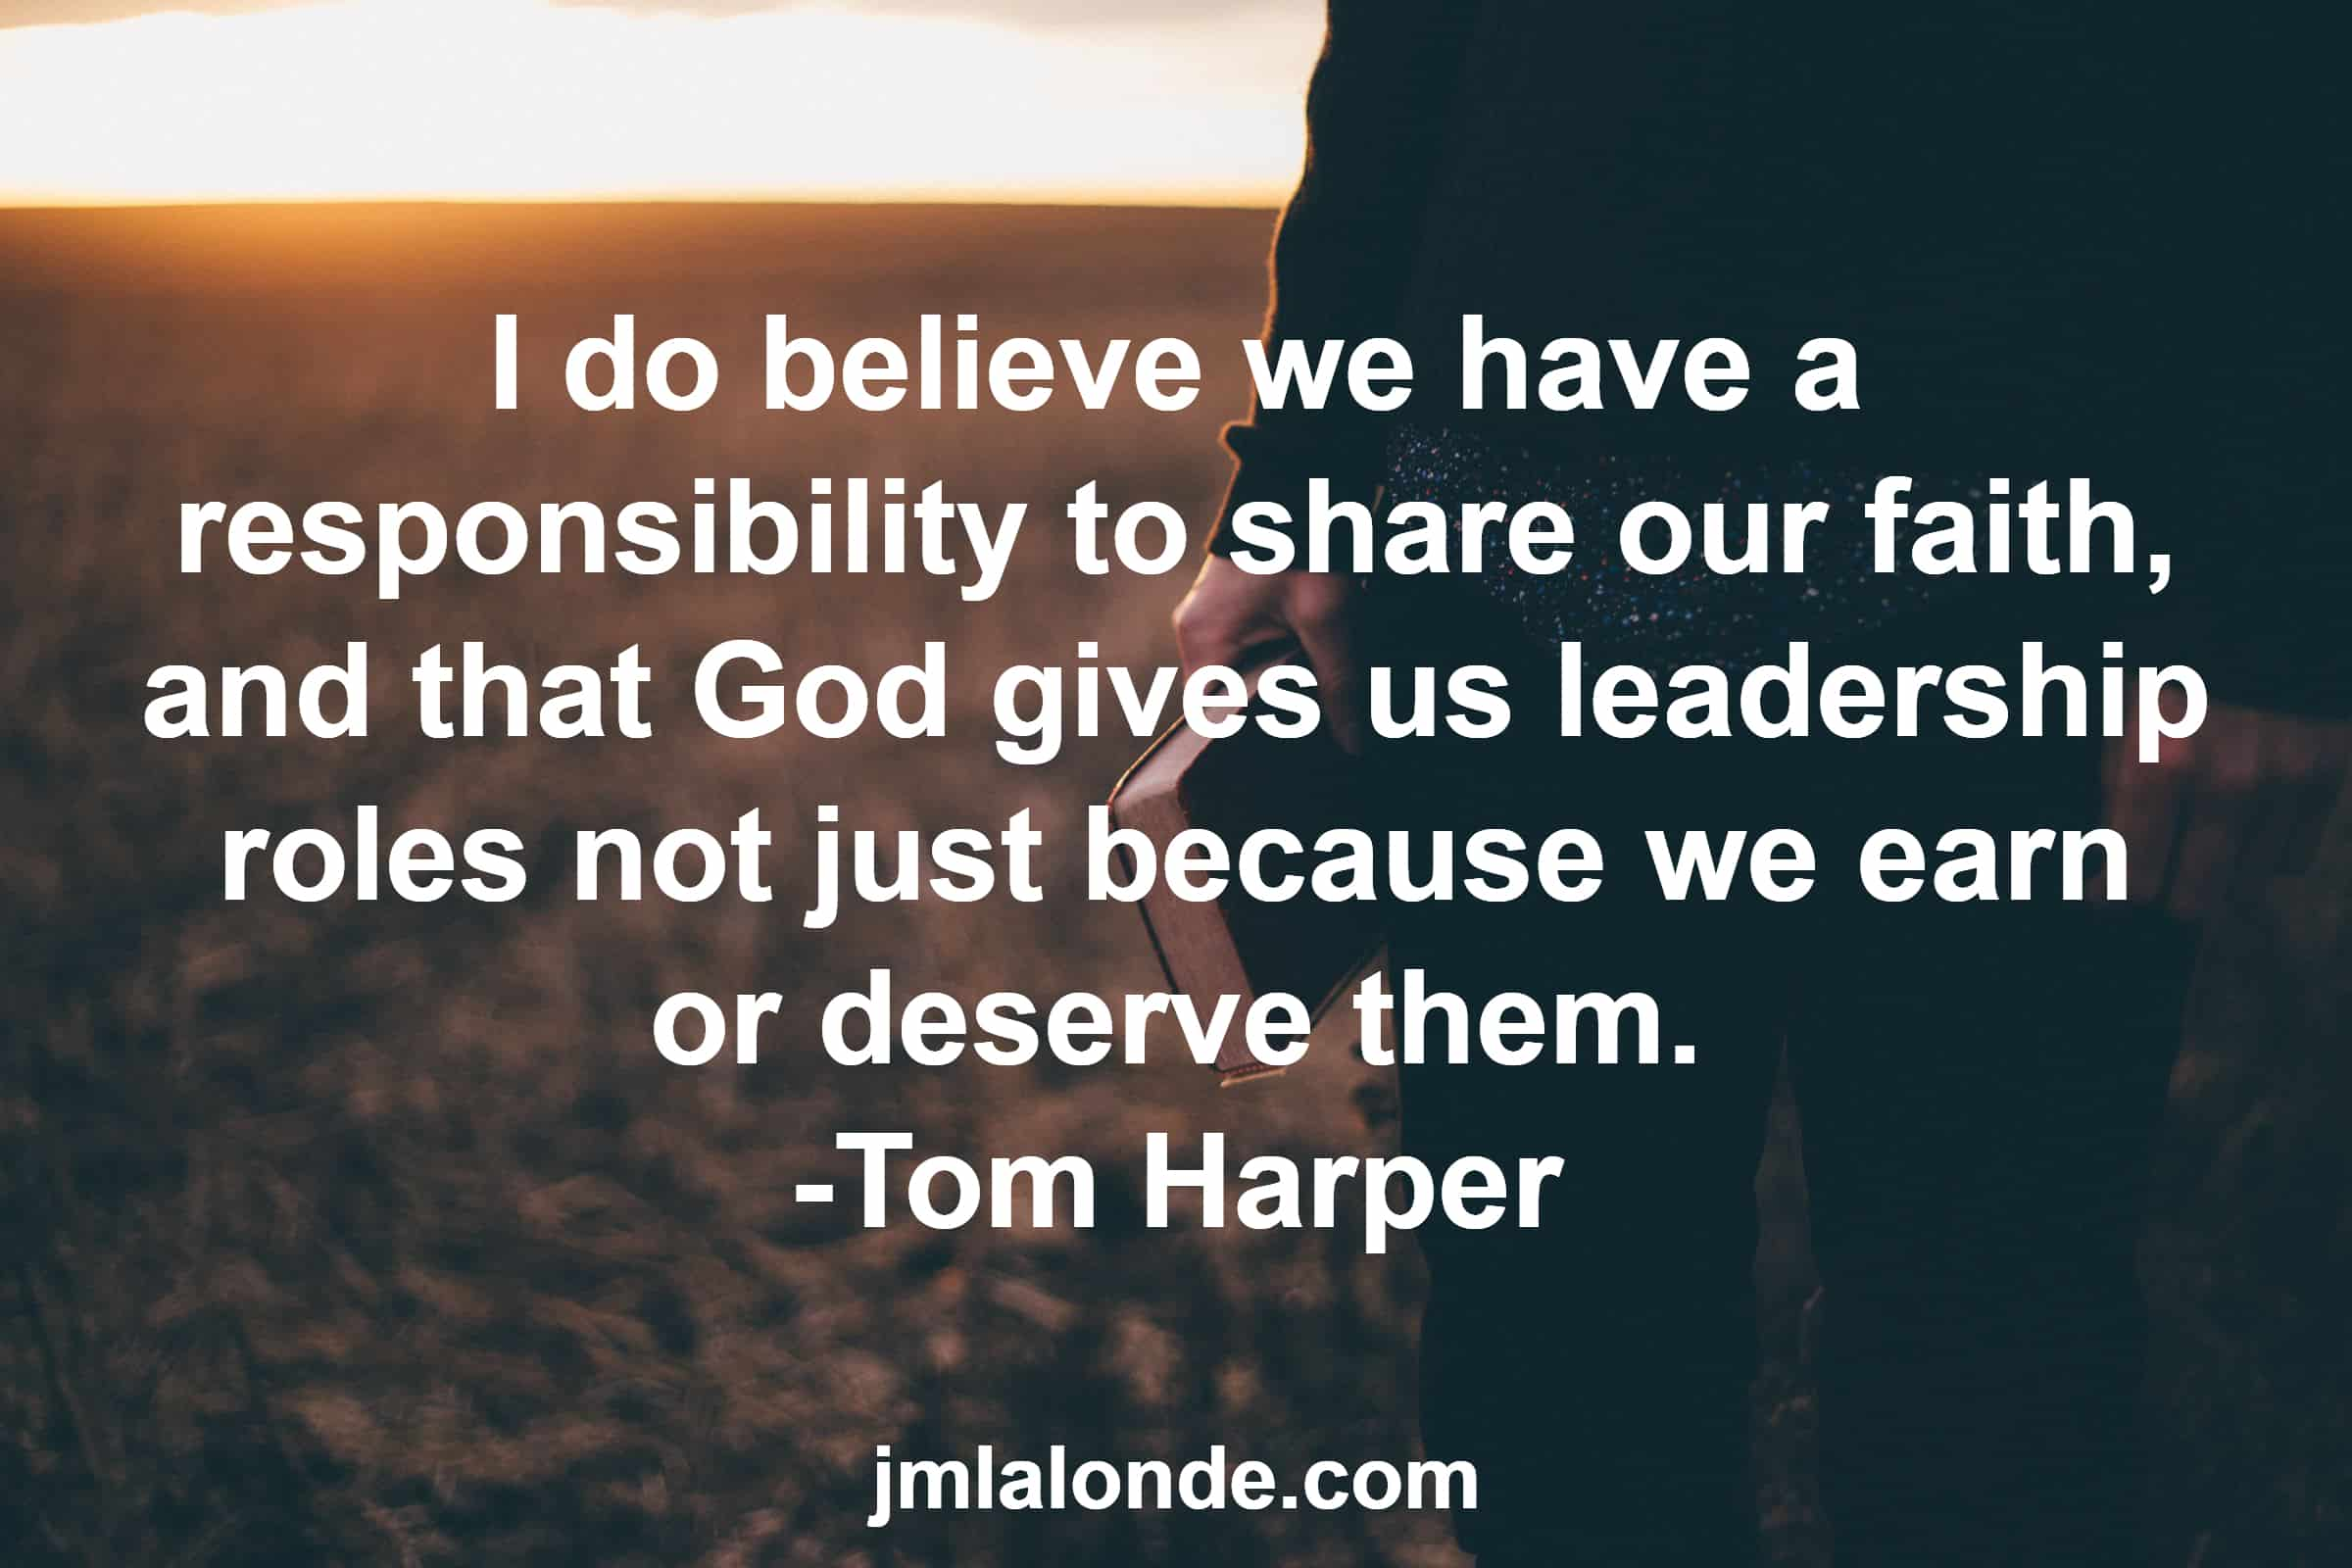 Learn how to share your faith in the workplace with Tom Harper